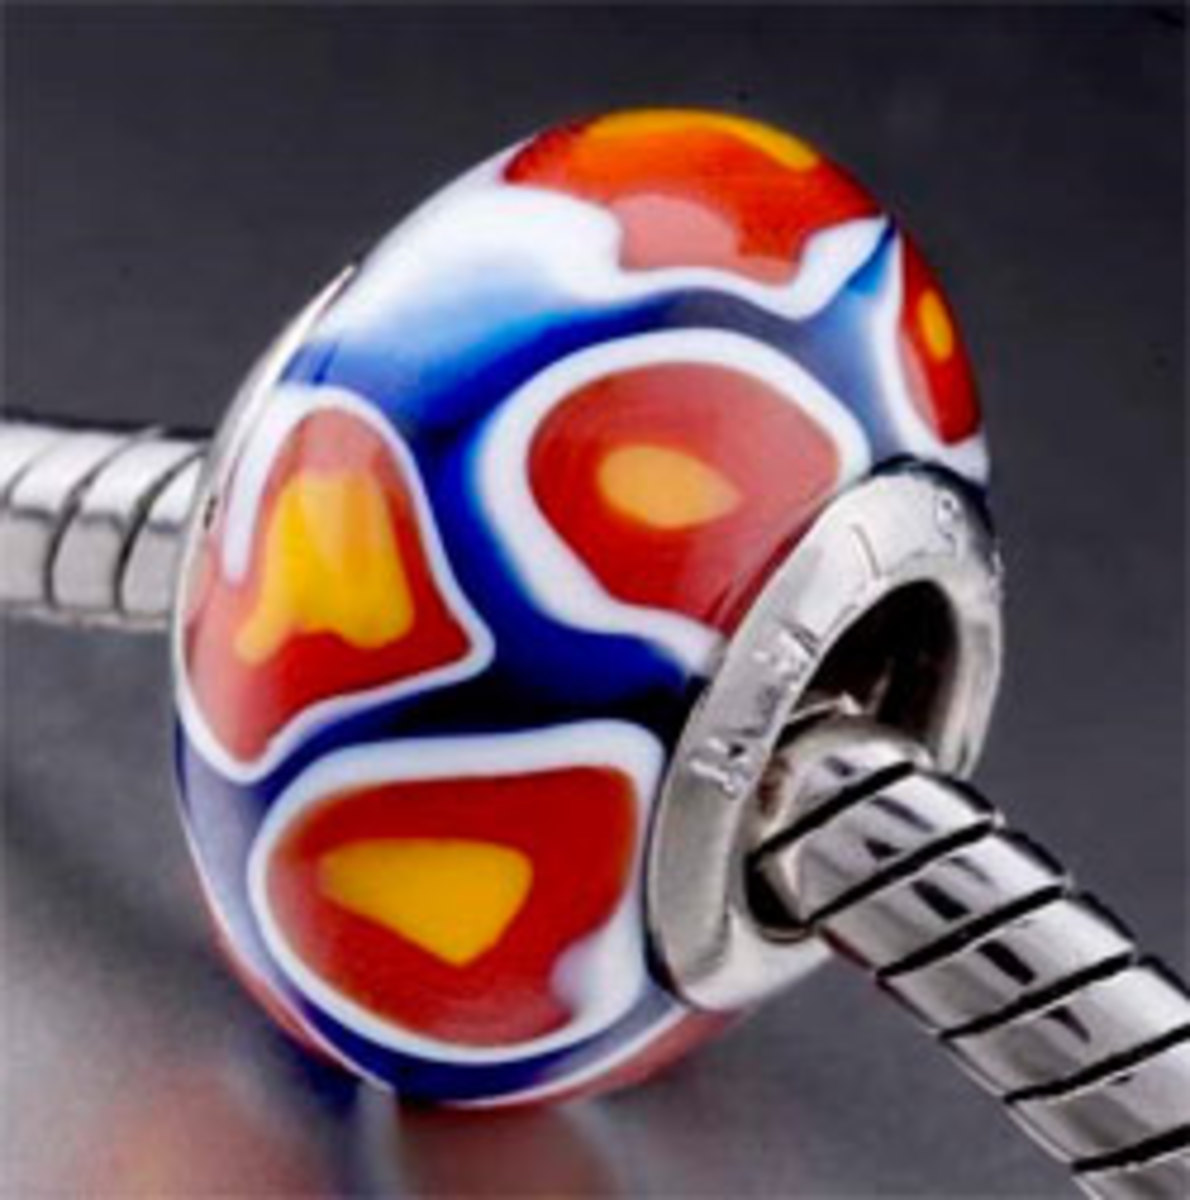 Buy Pandora beads online - like this handmade Murano glass bead from Amazon, created to fit a Pandora charm bracelet - stunning!